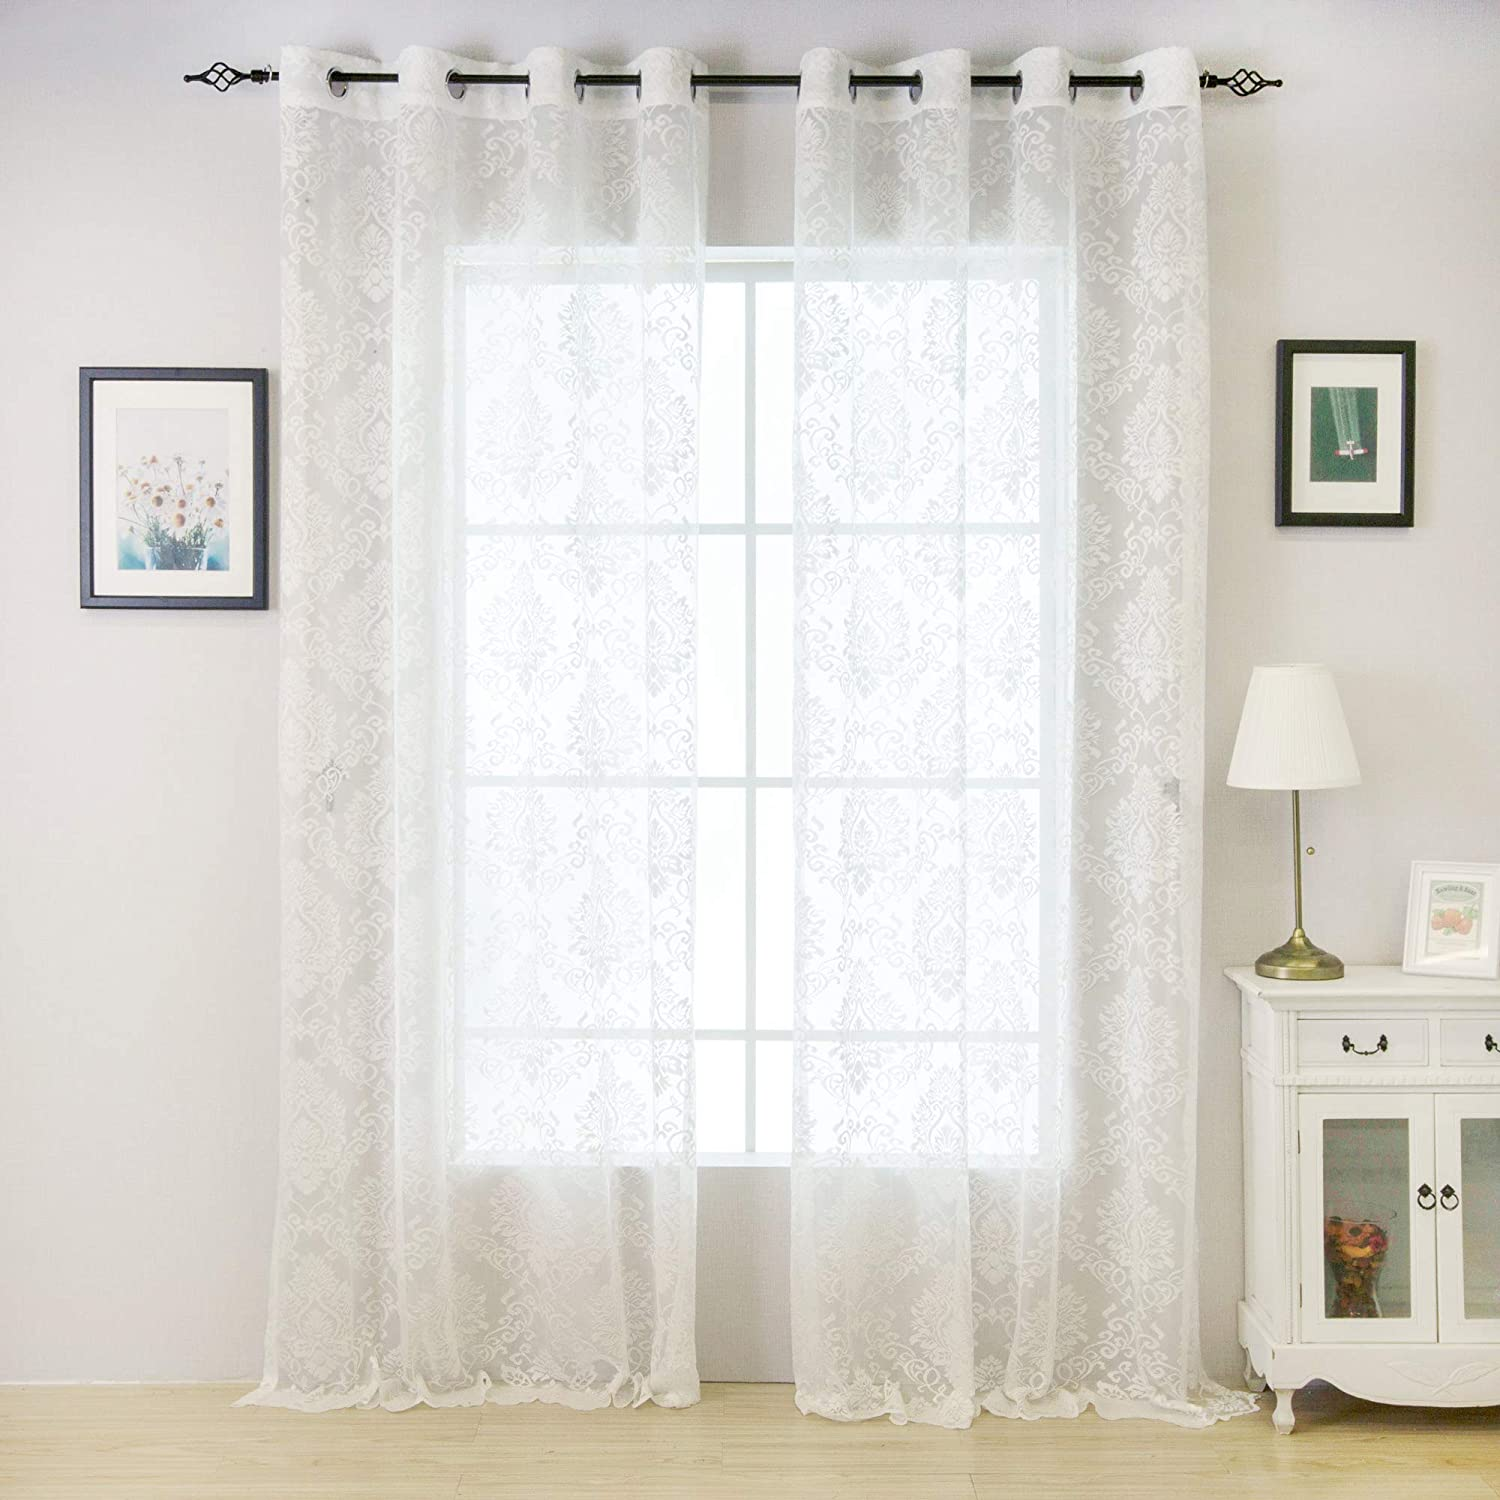 Amazon Com Valea Home Lace Sheer Curtains Grommet Drapes For